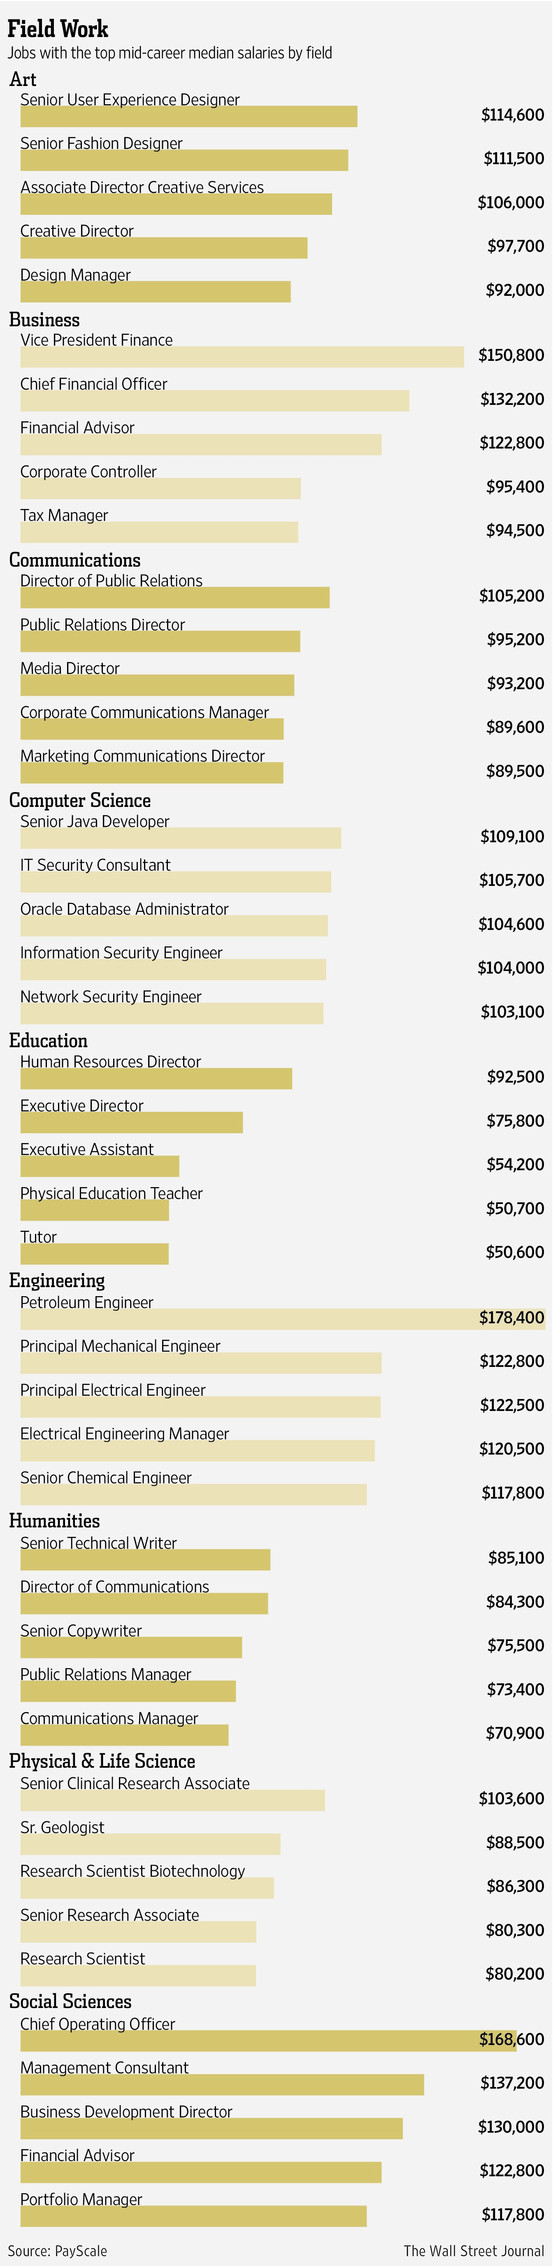 How College Major, Field and Job Affect Annual Pay